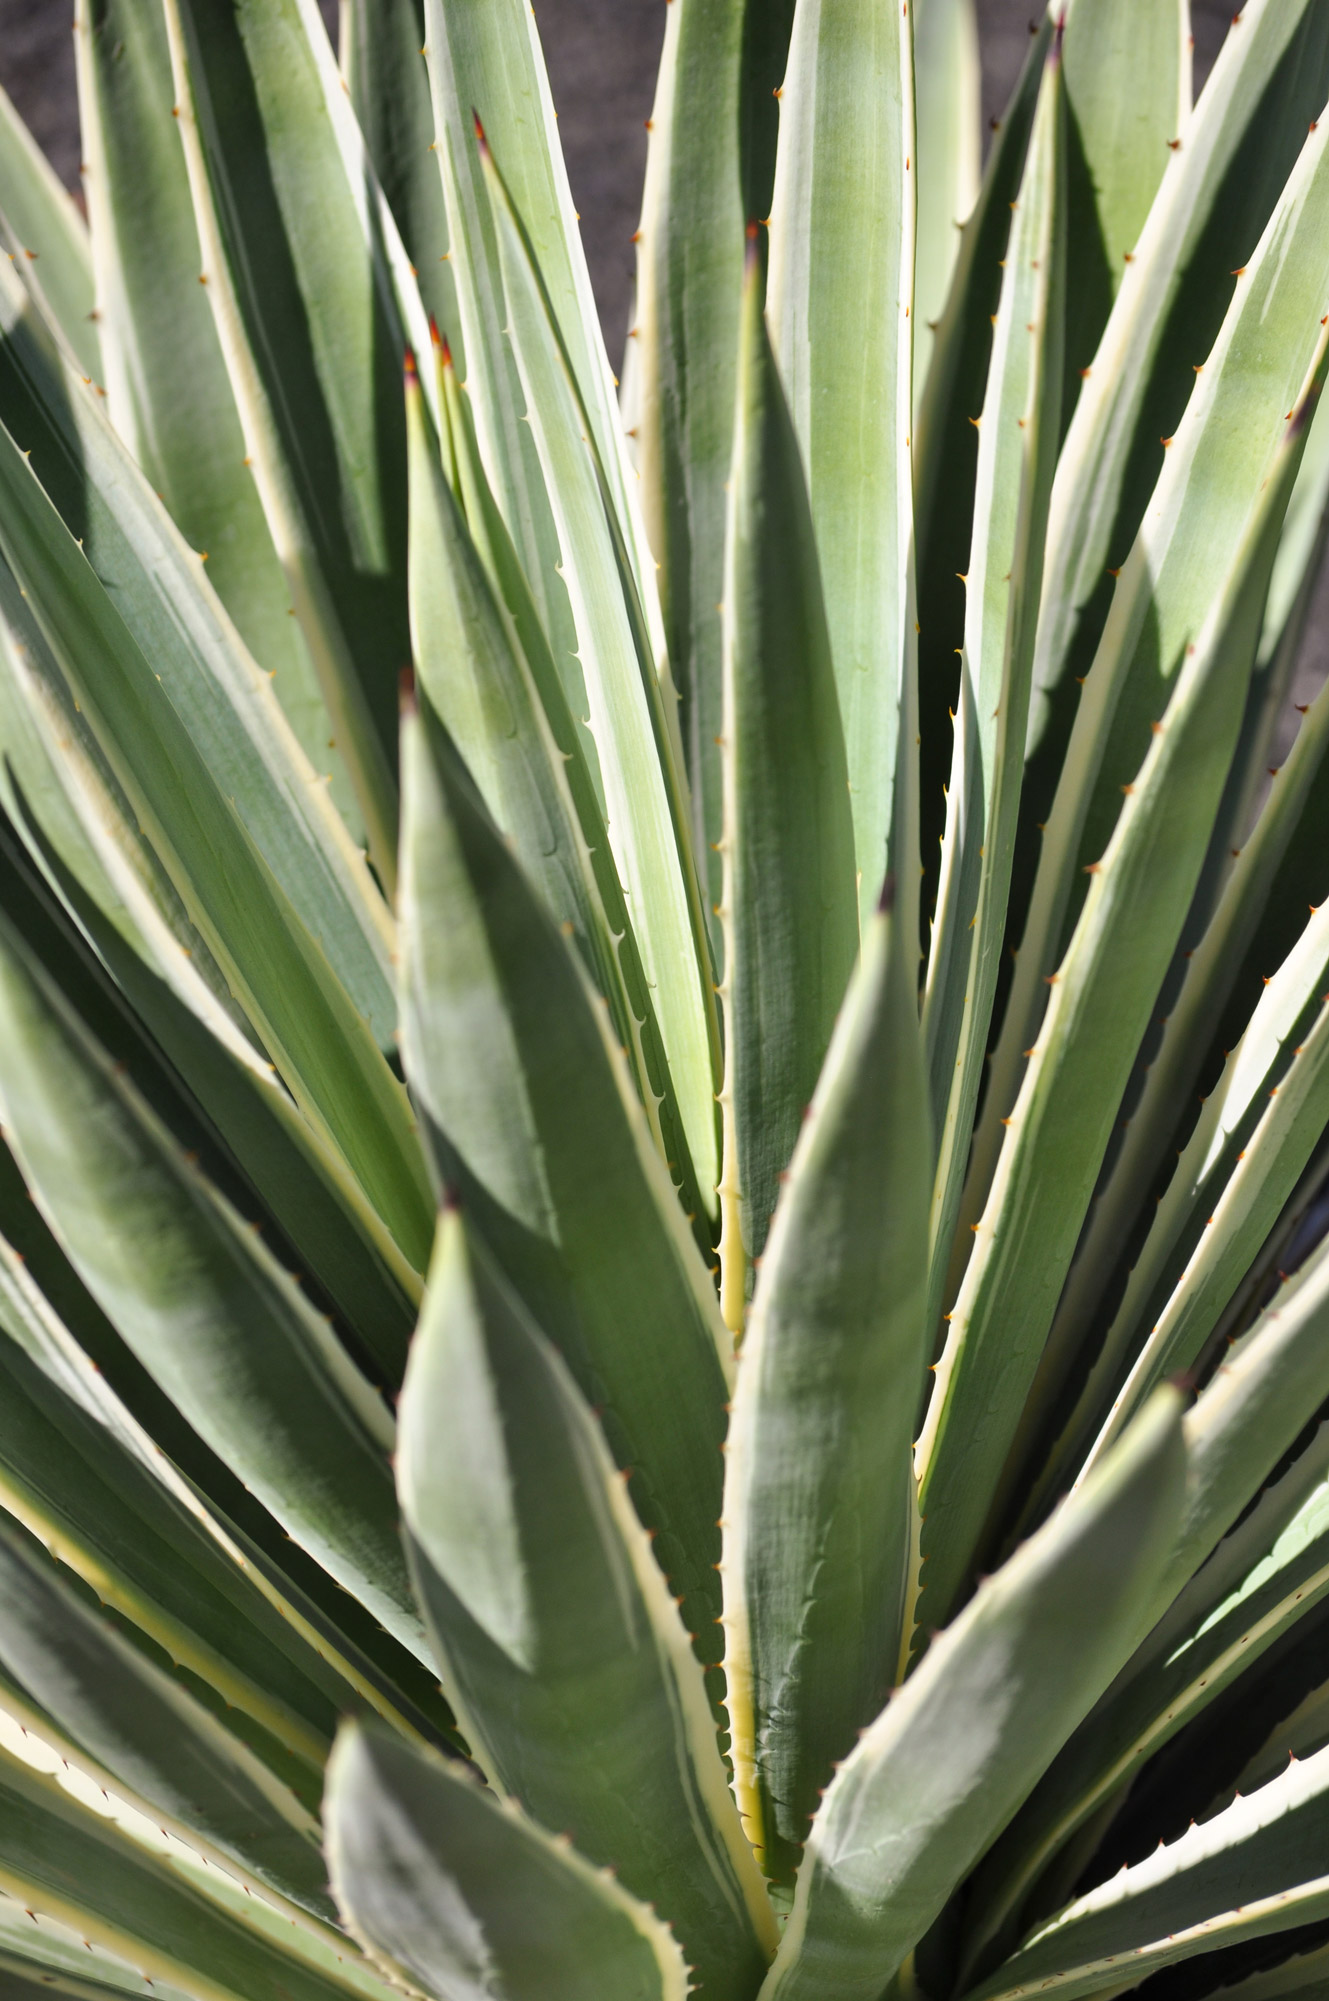 A close-up of the leaves of the Caribbean Agave.